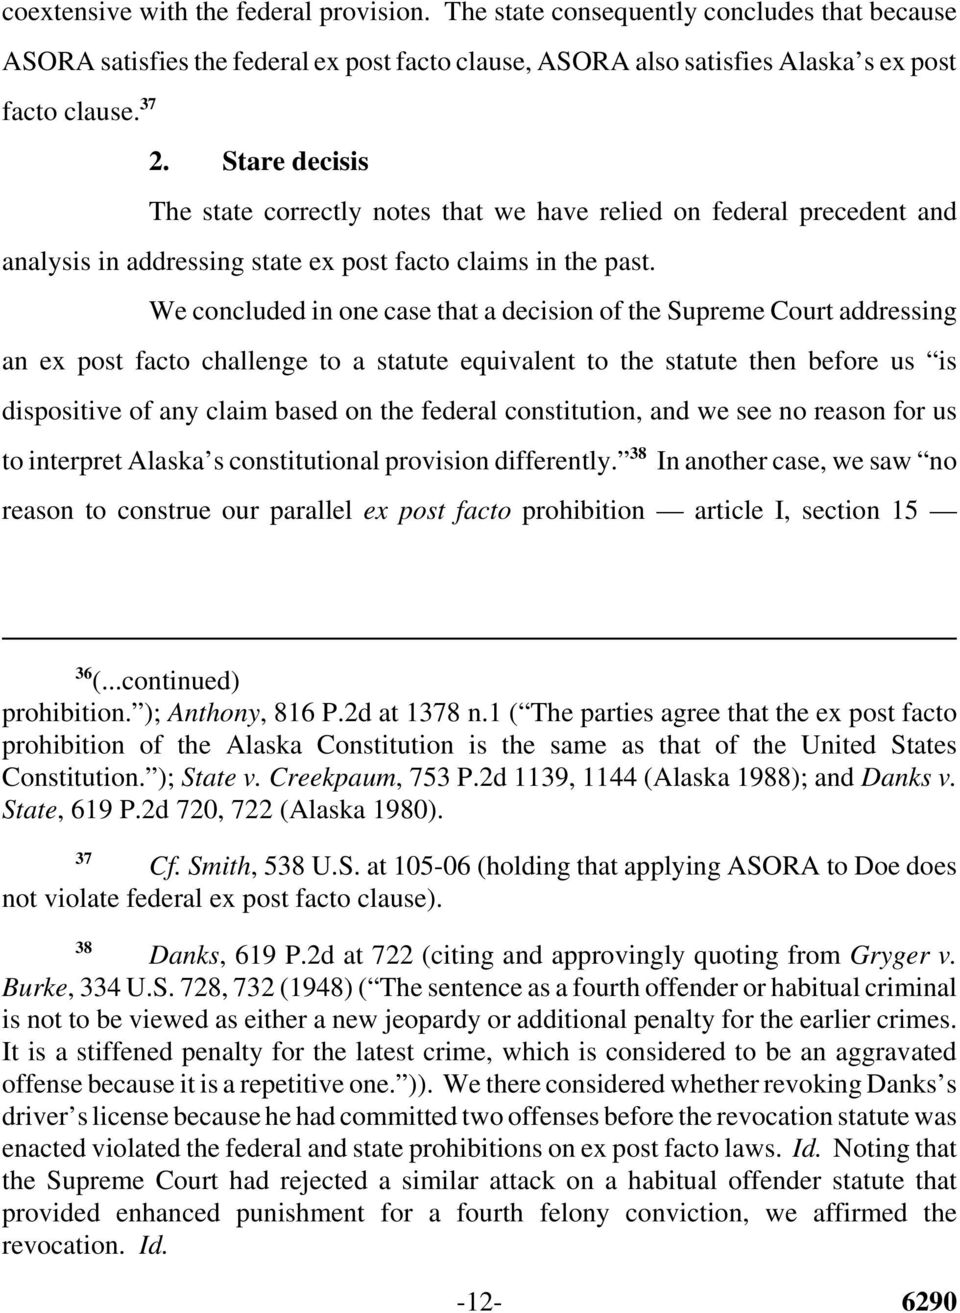 We concluded in one case that a decision of the Supreme Court addressing an ex post facto challenge to a statute equivalent to the statute then before us is dispositive of any claim based on the